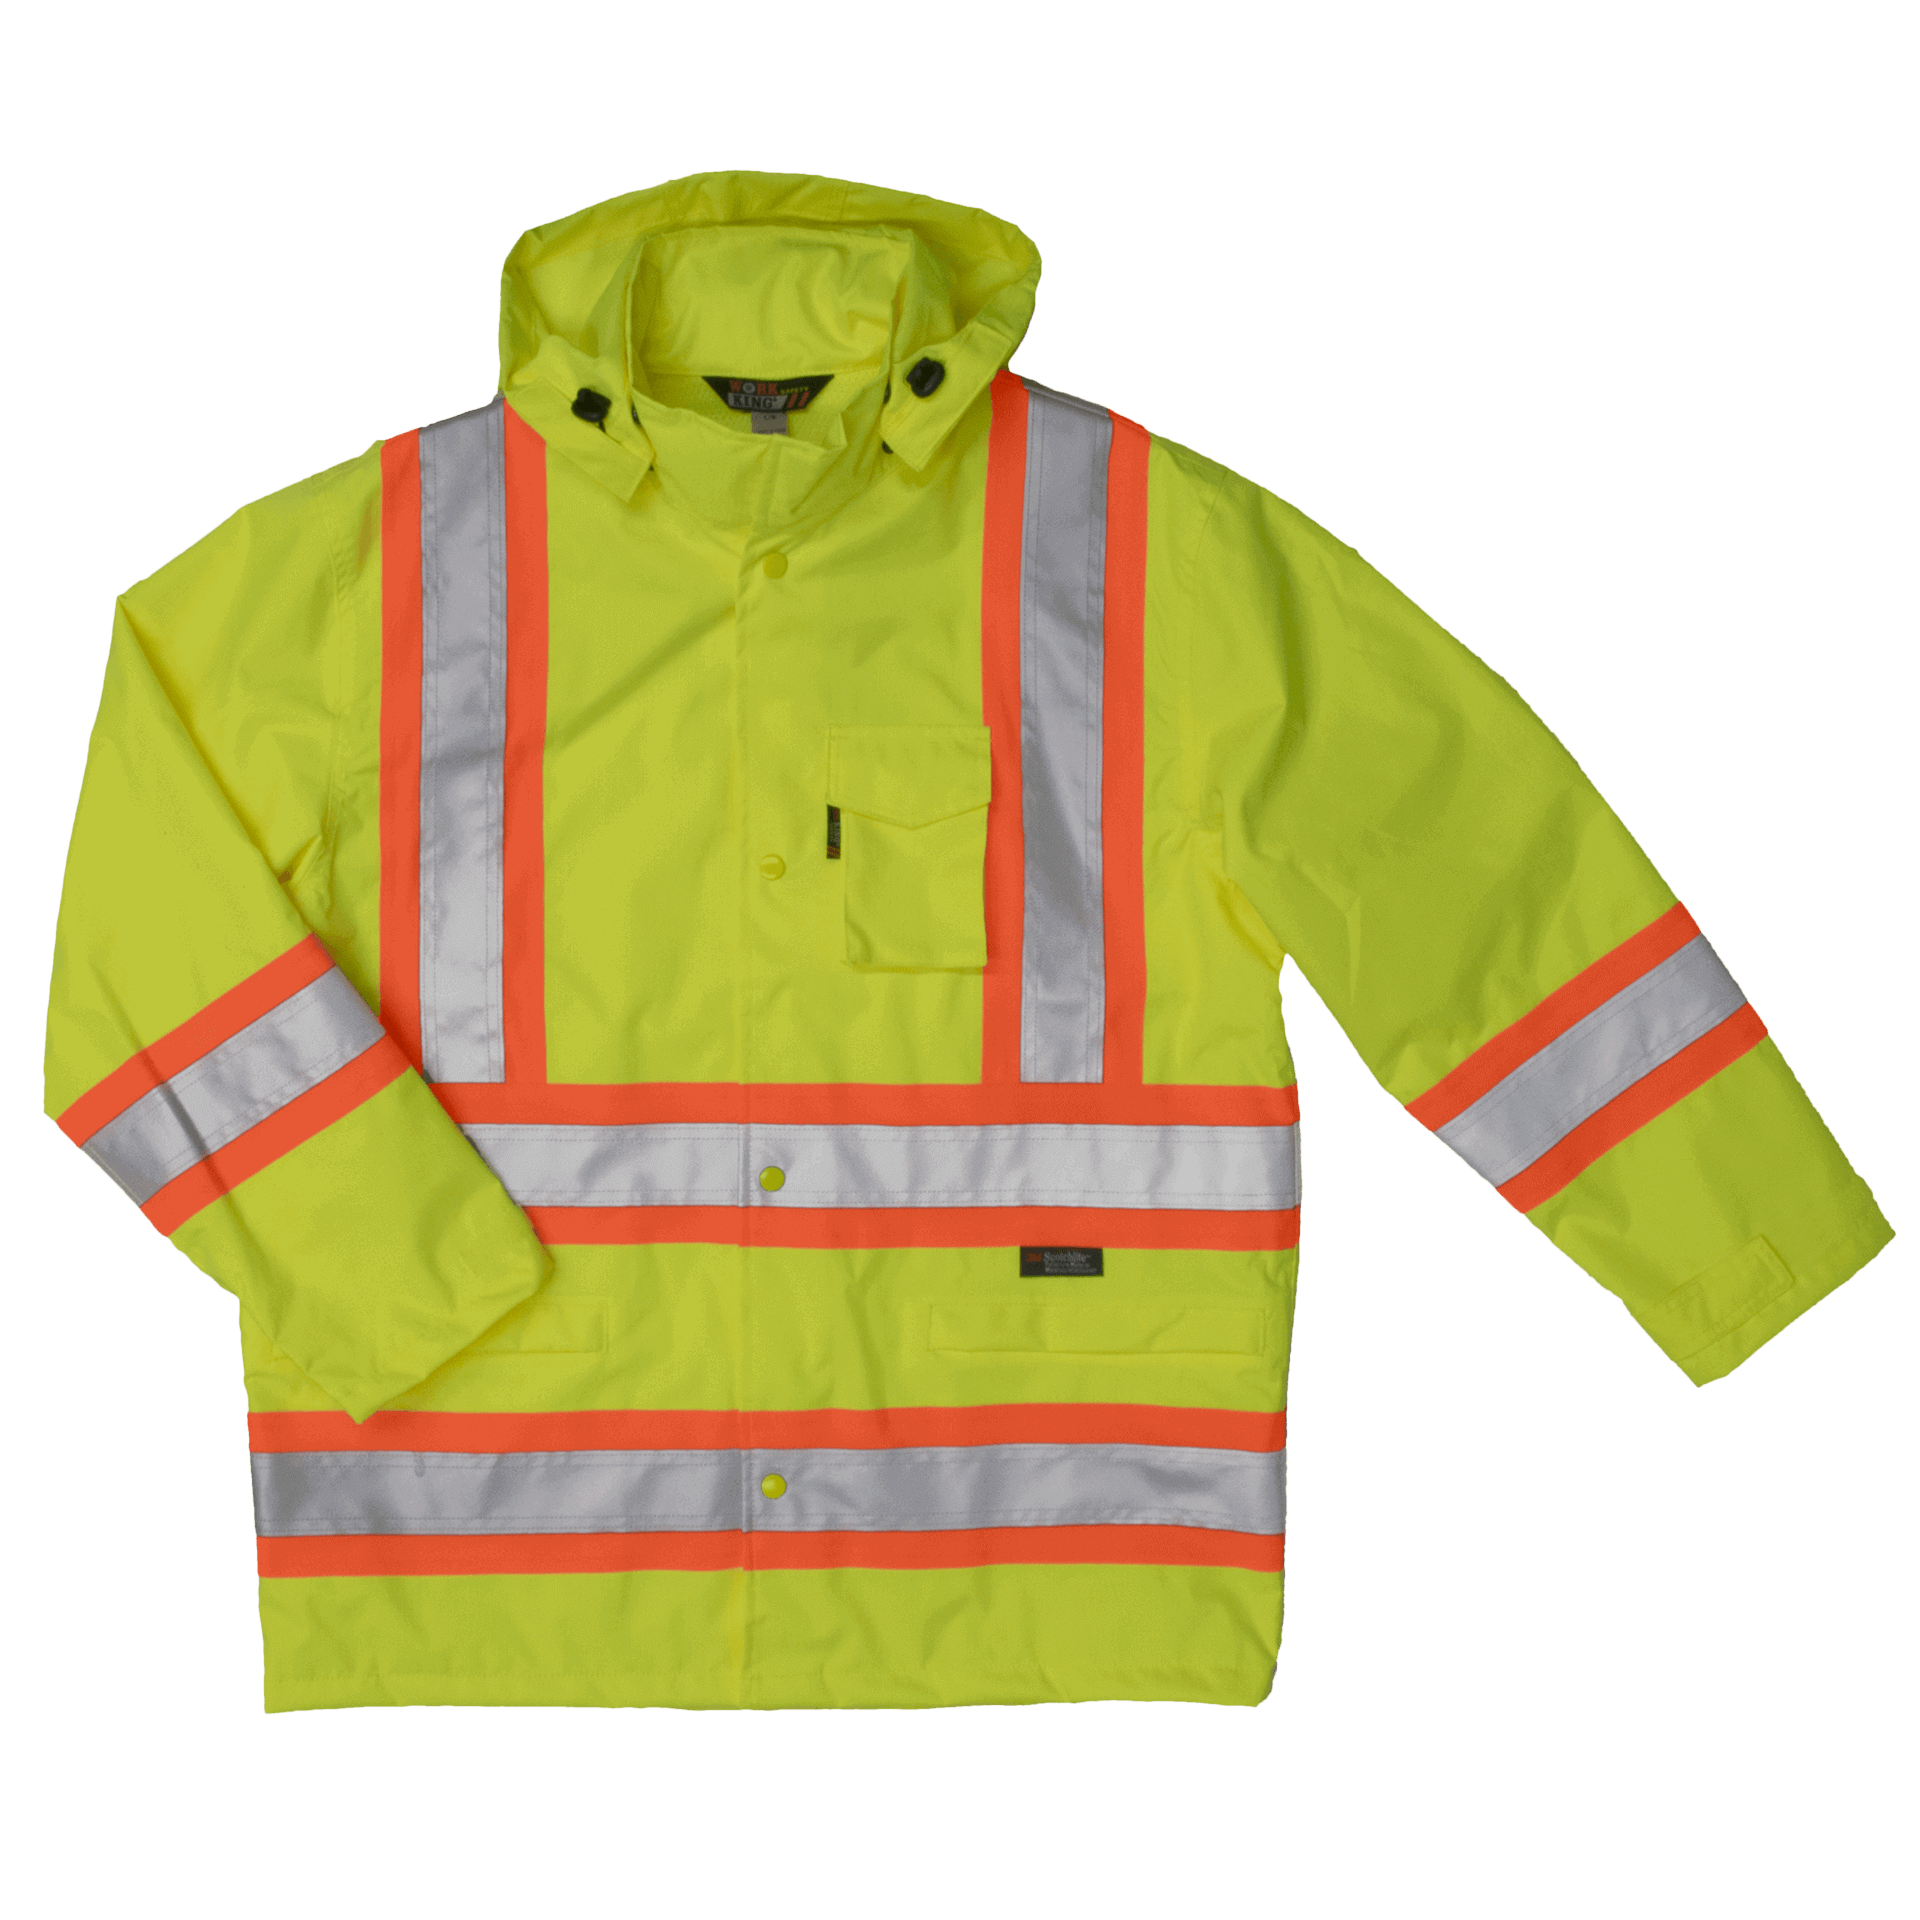 Work King Hi-Vis Rain Jacket - S372